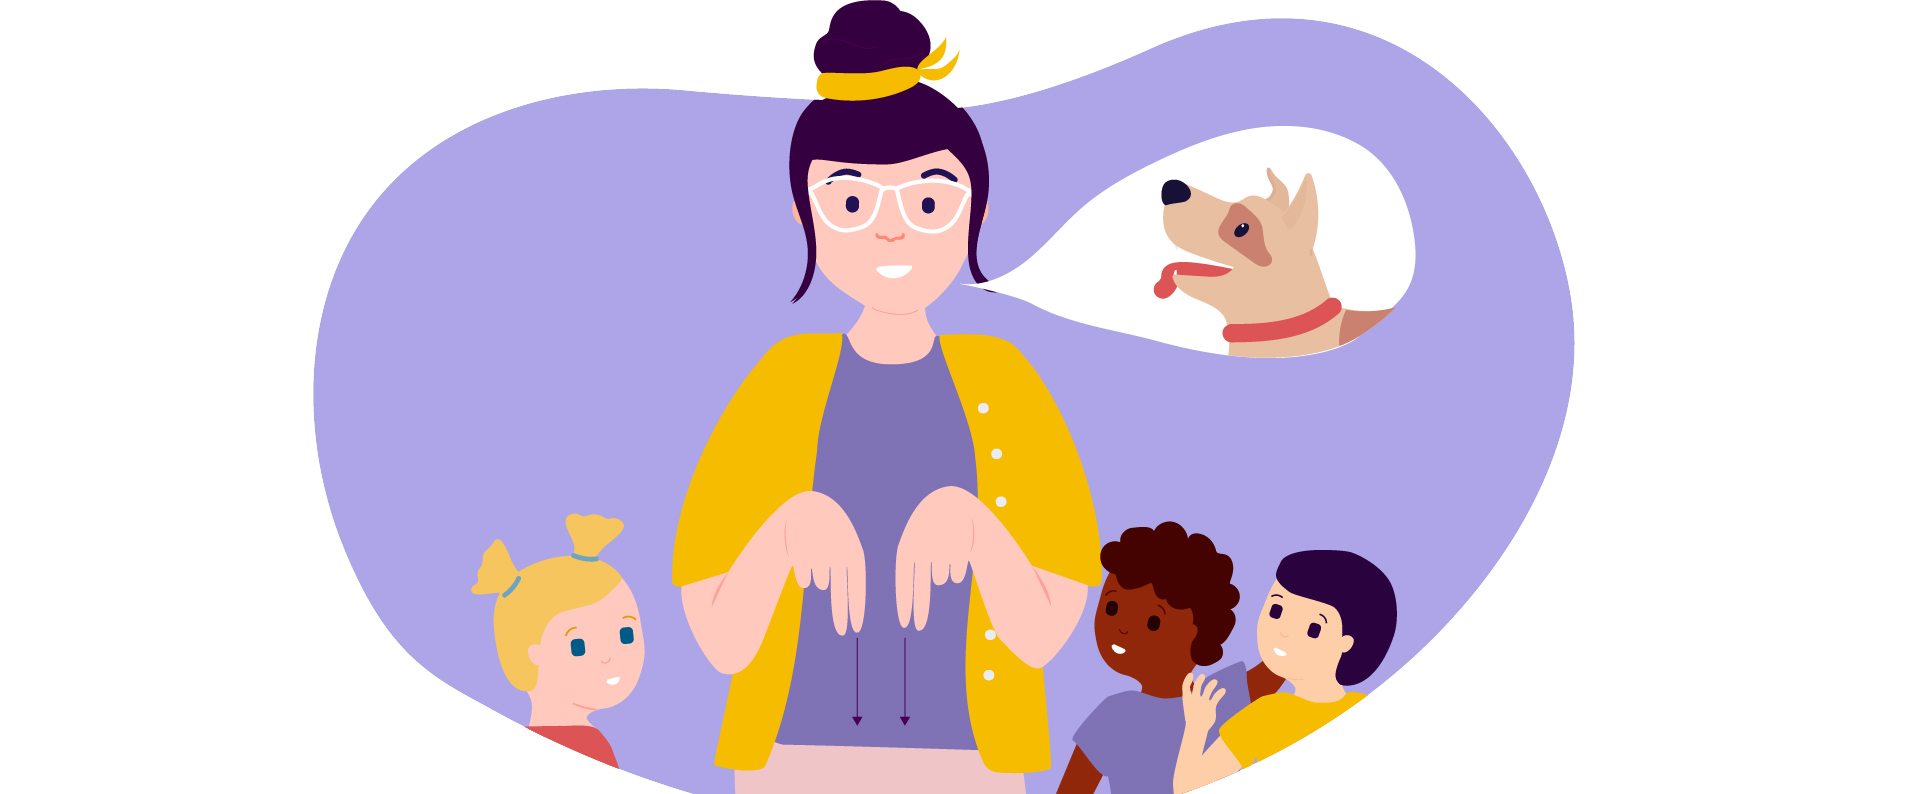 For better Early Years language learning, we need more Makaton